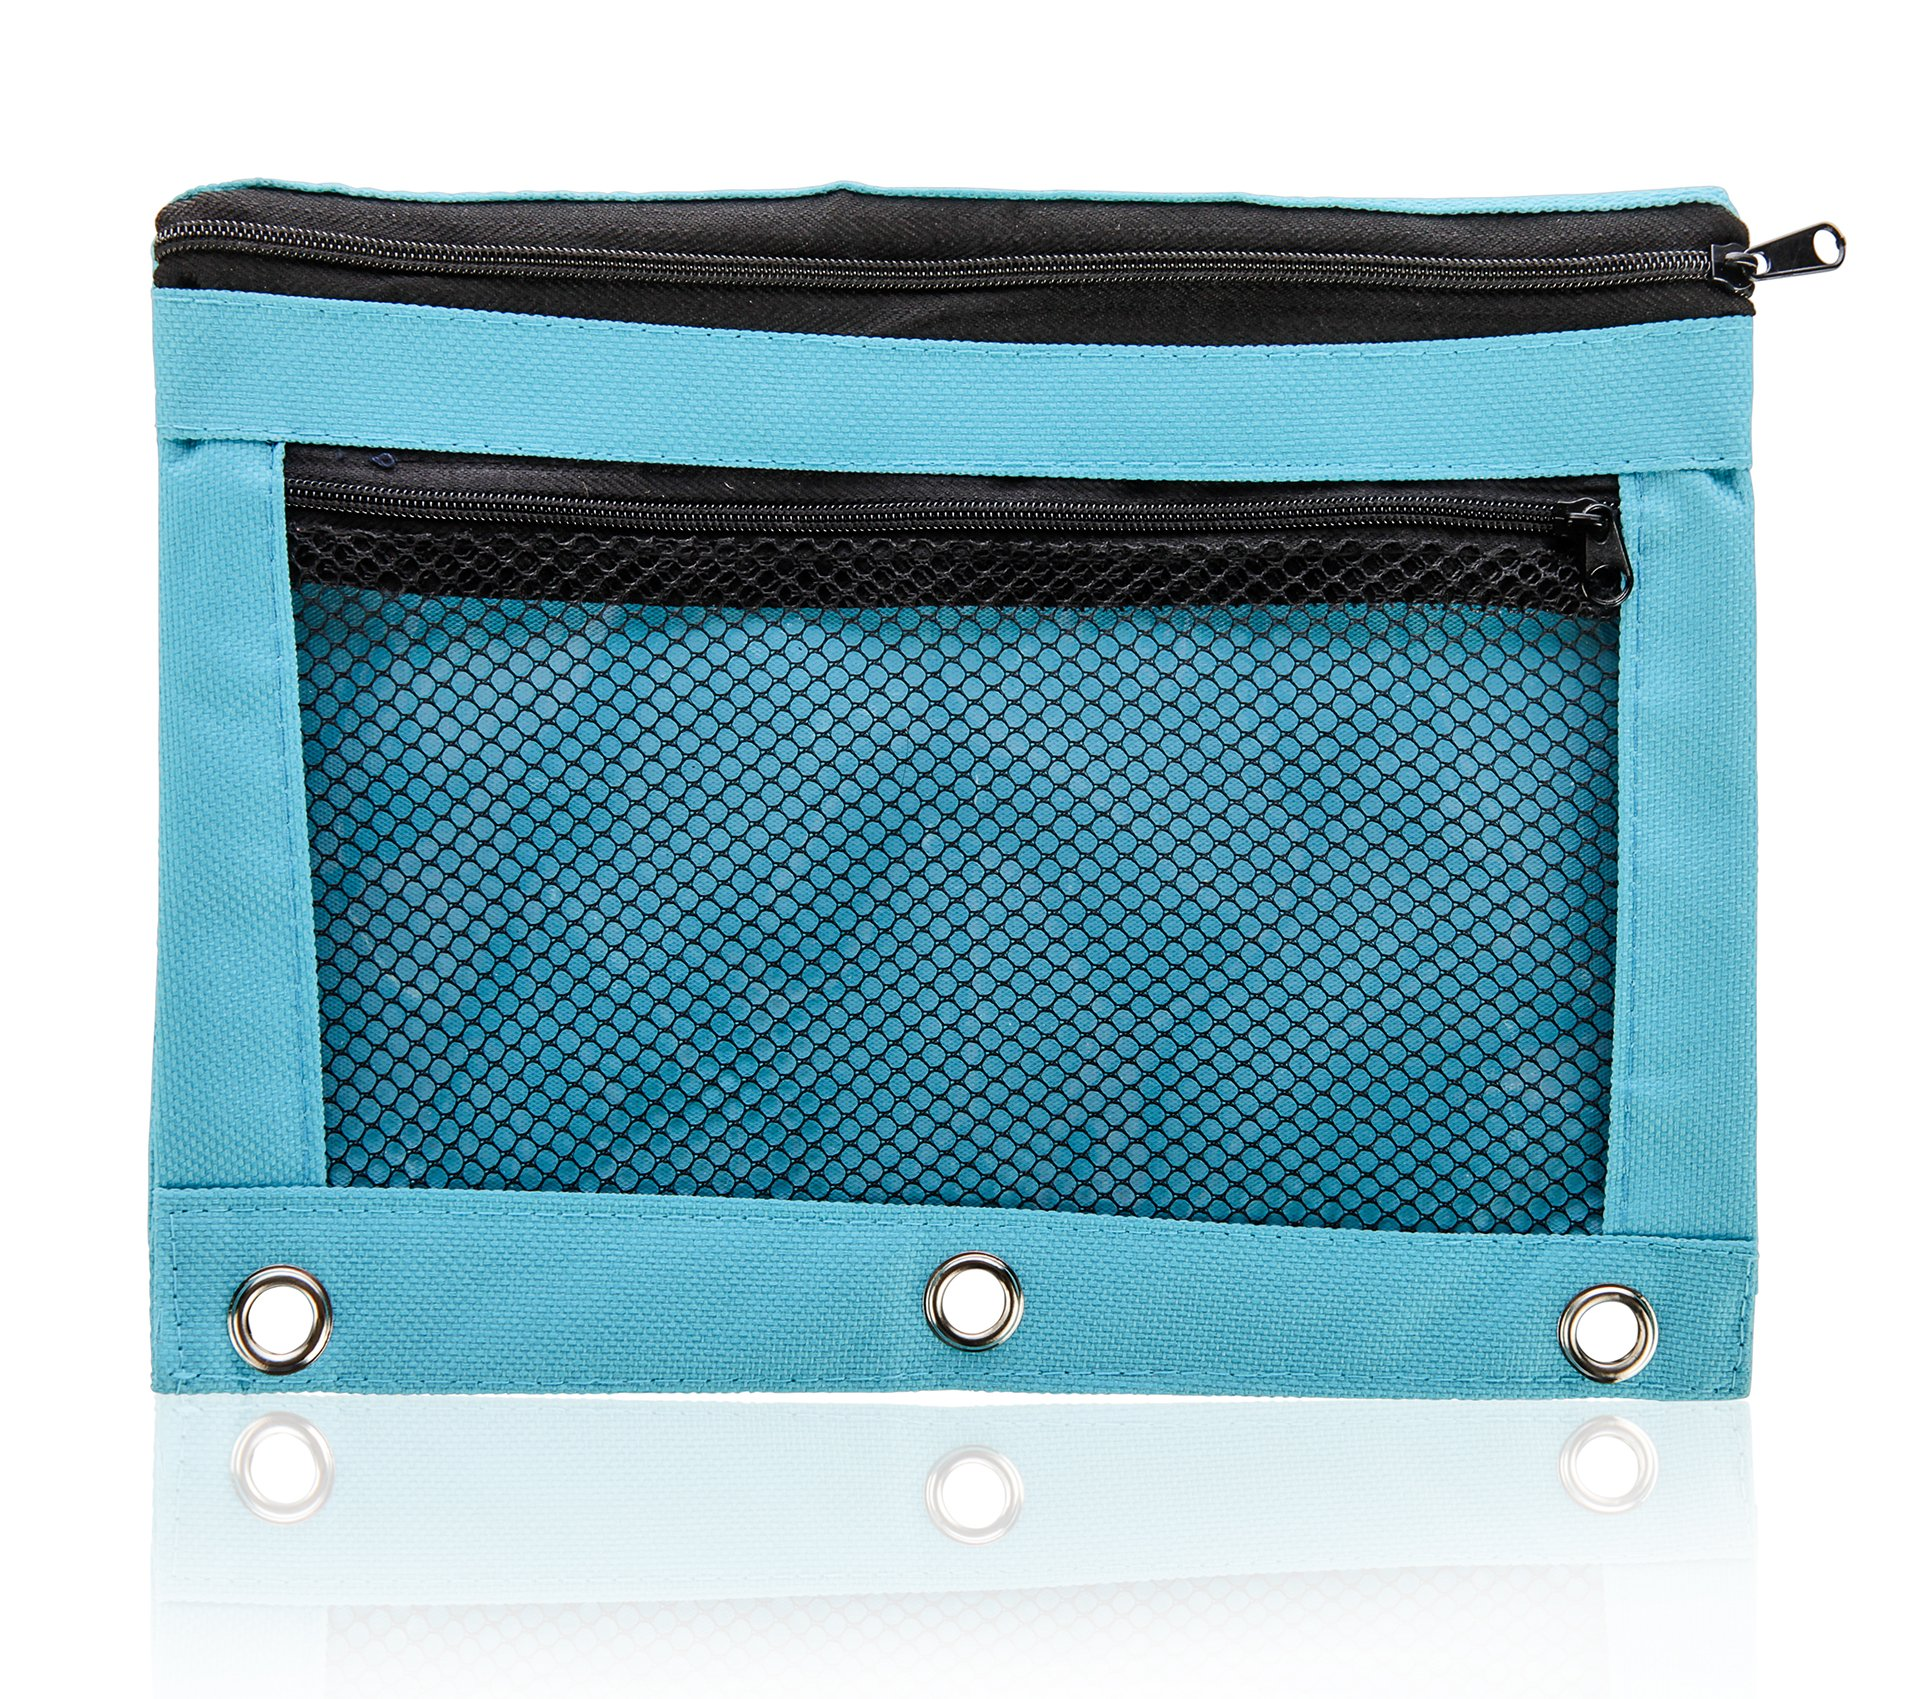 Pencil Bag with Zipper for Kids & Adults by Boona|3 Ring Binder Pouch for Fountain Pens|2 Compartments & Mesh Window|Canvas Organizer|Art Marker & Crayon Carrying Pouch|Washable (5 Pack of 6 colors) by KP Solutions (Image #3)